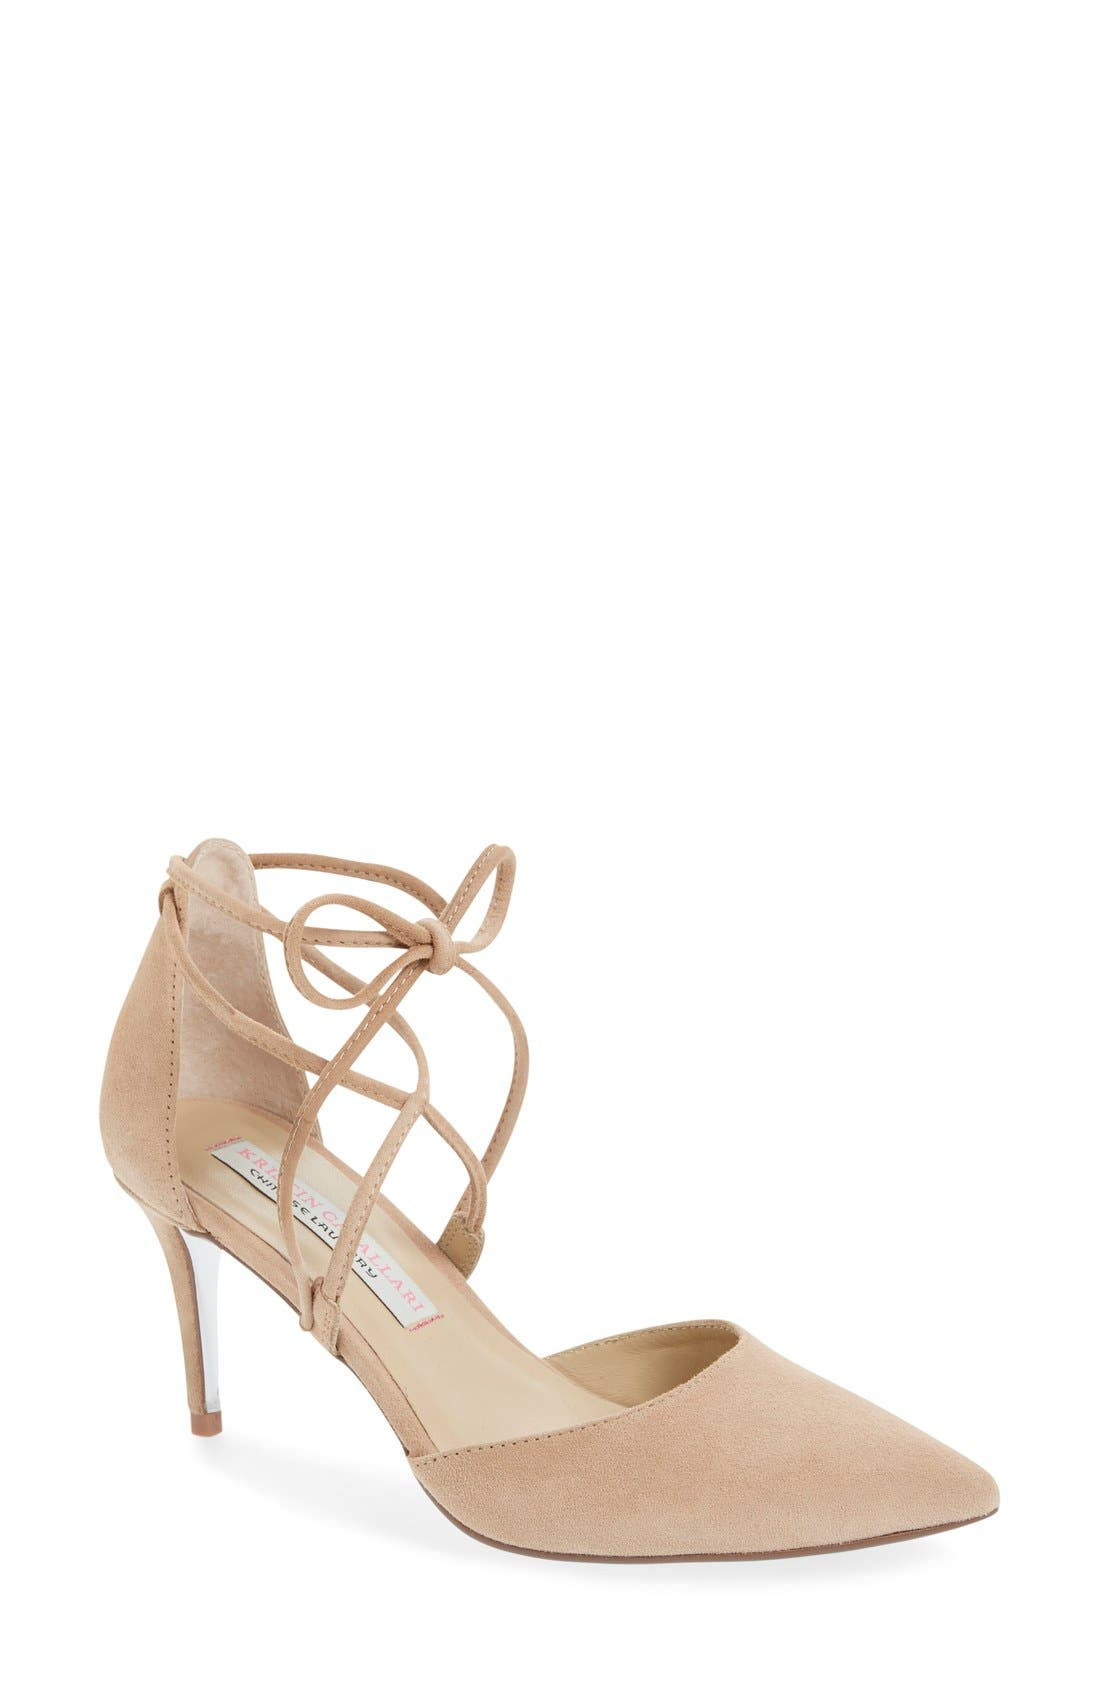 Main Image - Kristin Cavallari 'Opel' Lace-Up Pointy Toe Pump (Women)